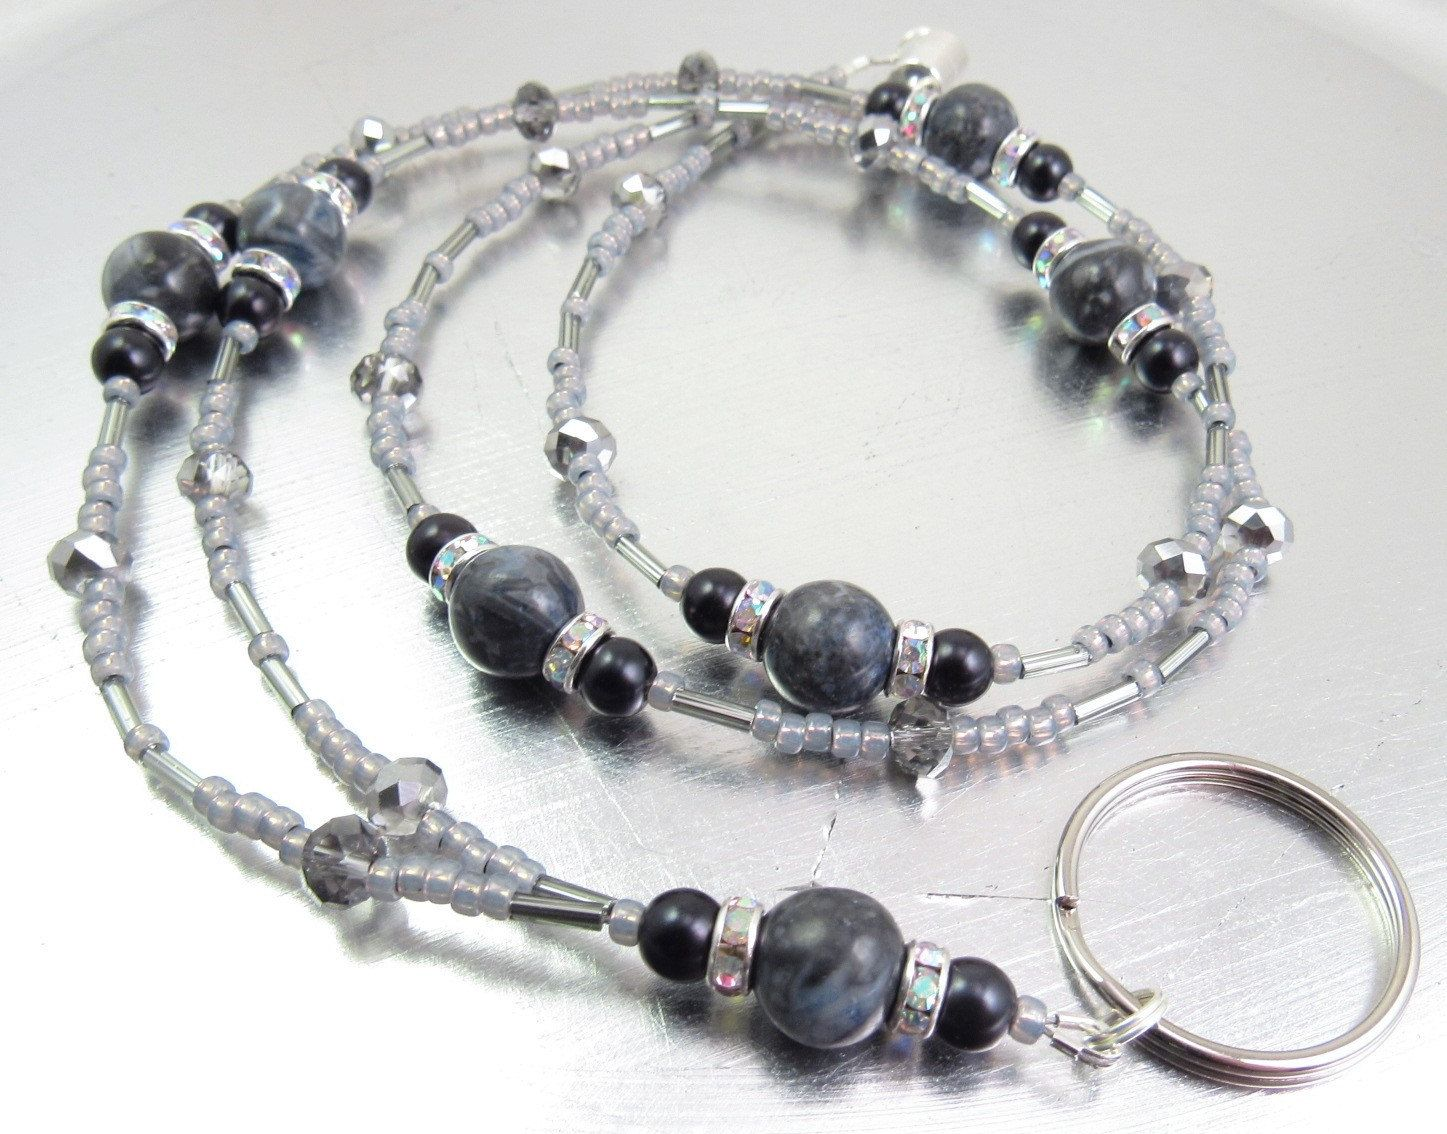 ID Lanyard, Badge Holder - Blue Grey Jasper, Black Glass Pearl, and Black Faceted Crystal with AB Swarovski Crystal Accent Wheels by mmojewelry on Etsy